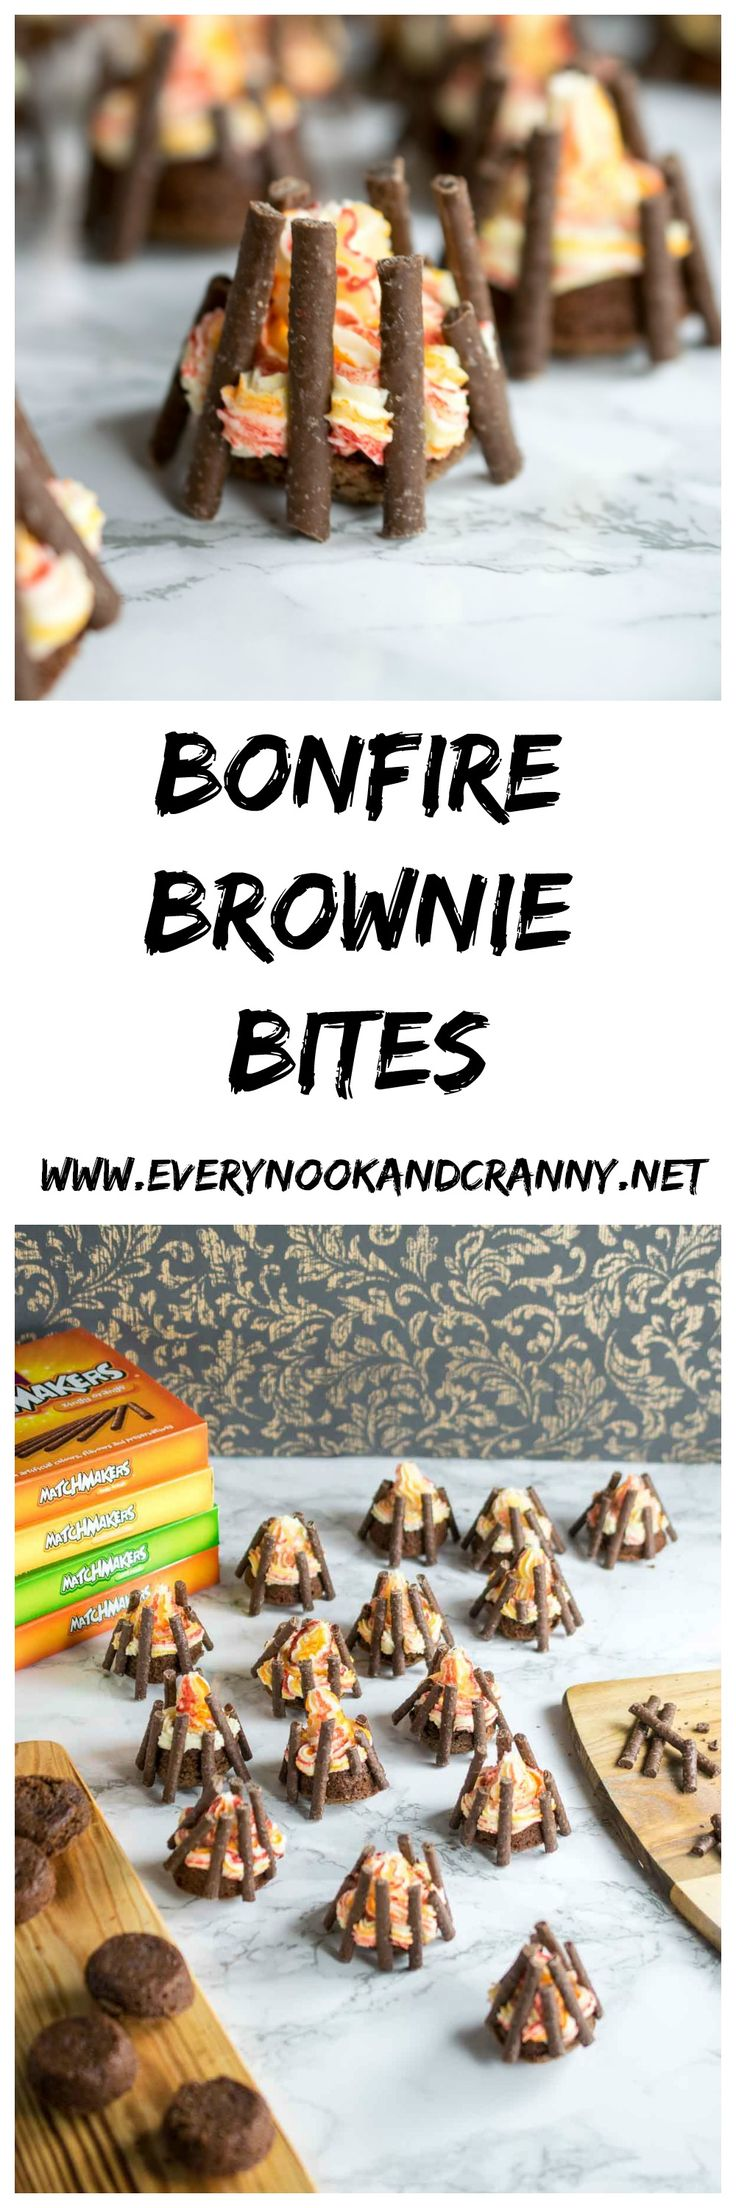 Halloween may be gaining popularity slowly over here in England but Bonfire Night is and always has been much more of a celebration. I say celebration and of course, I mean excuse to bake! There are some traditional treats made to celebrate Guy Fawkes's failed attempt at blowing up Parliament with gunpowder including Yorkshire parkin